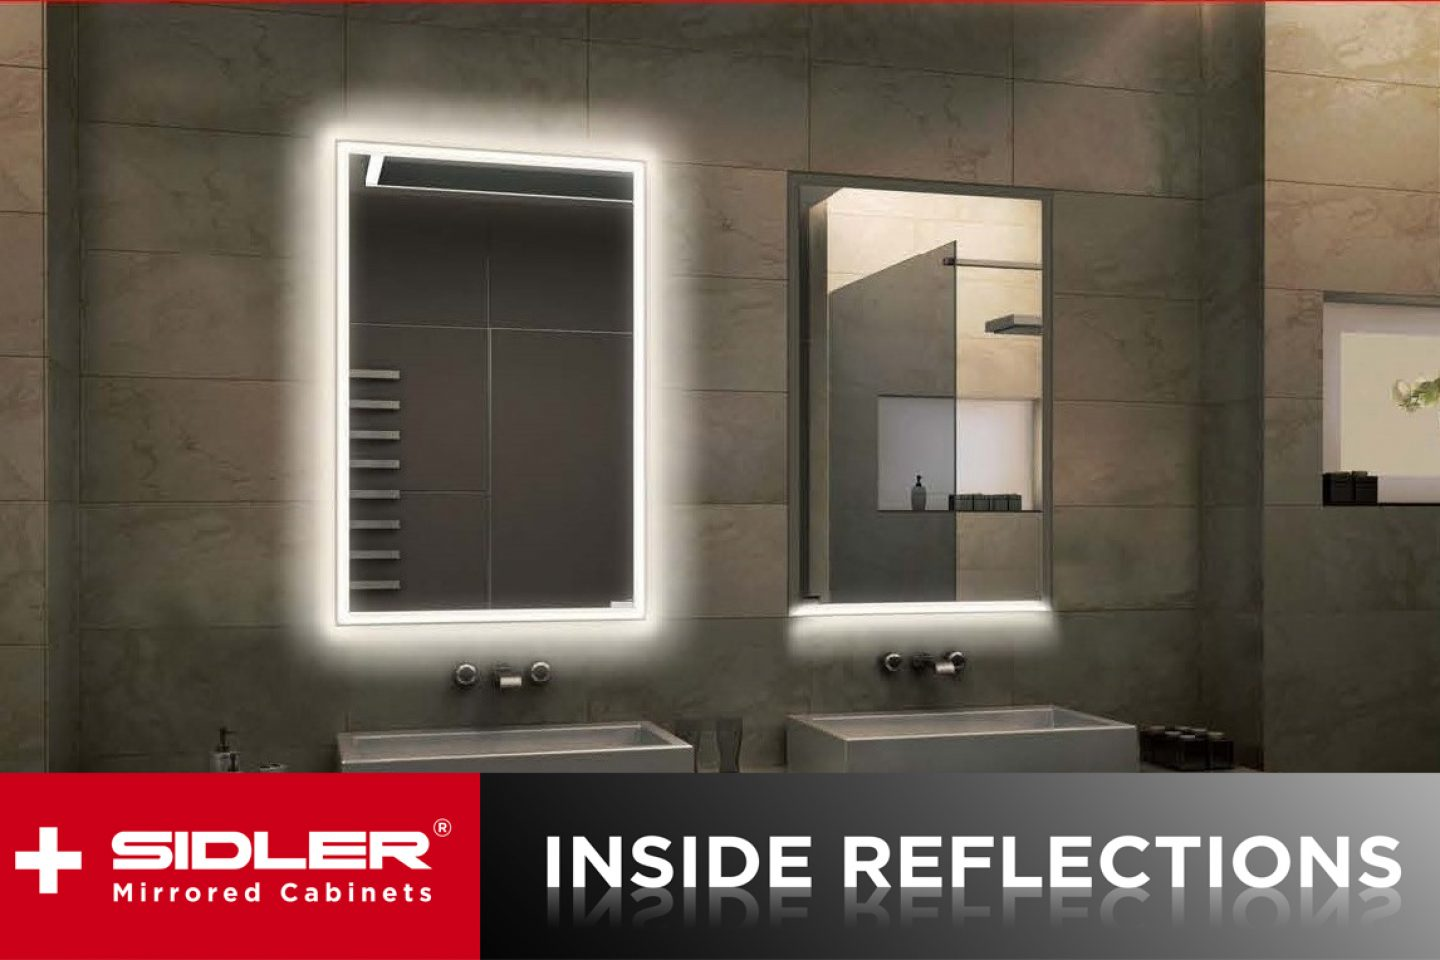 May 2020-SIDLER, INSIDE REFLECTIONS - Sharing Our Newest Innovations! The Quadro!_cropped